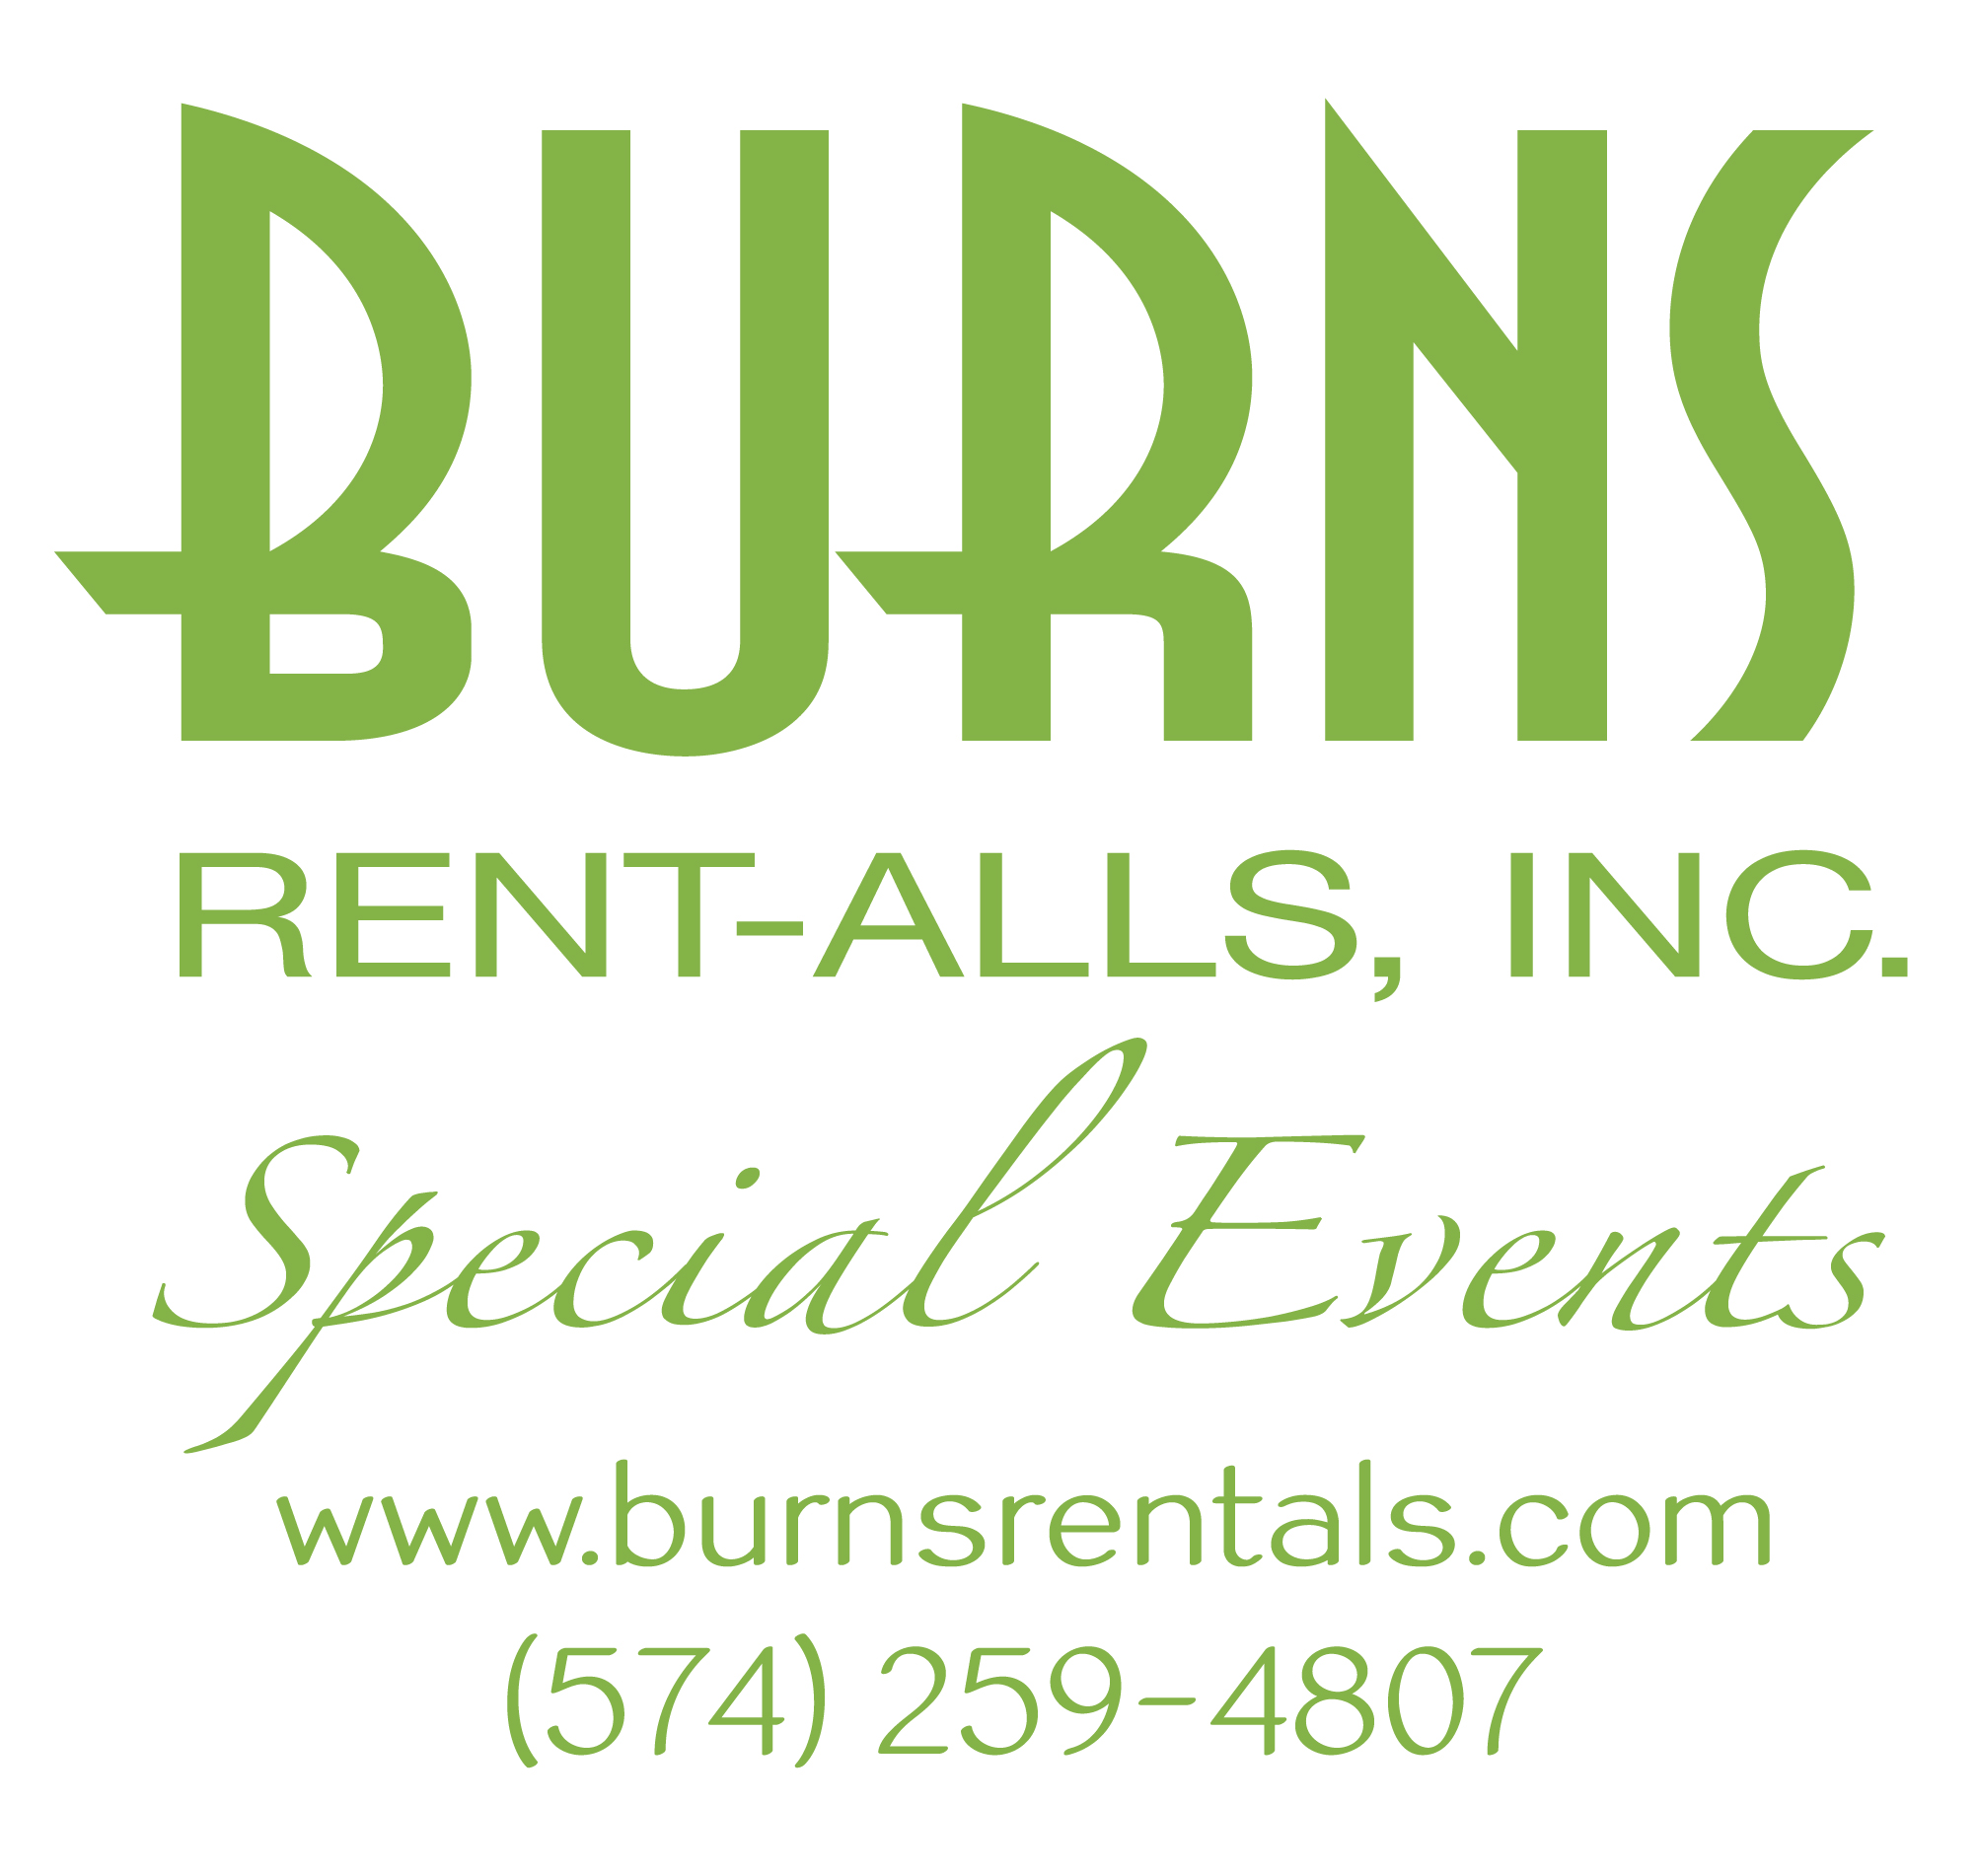 Burns Spec Events-GRN Logo with Web and Phone LG